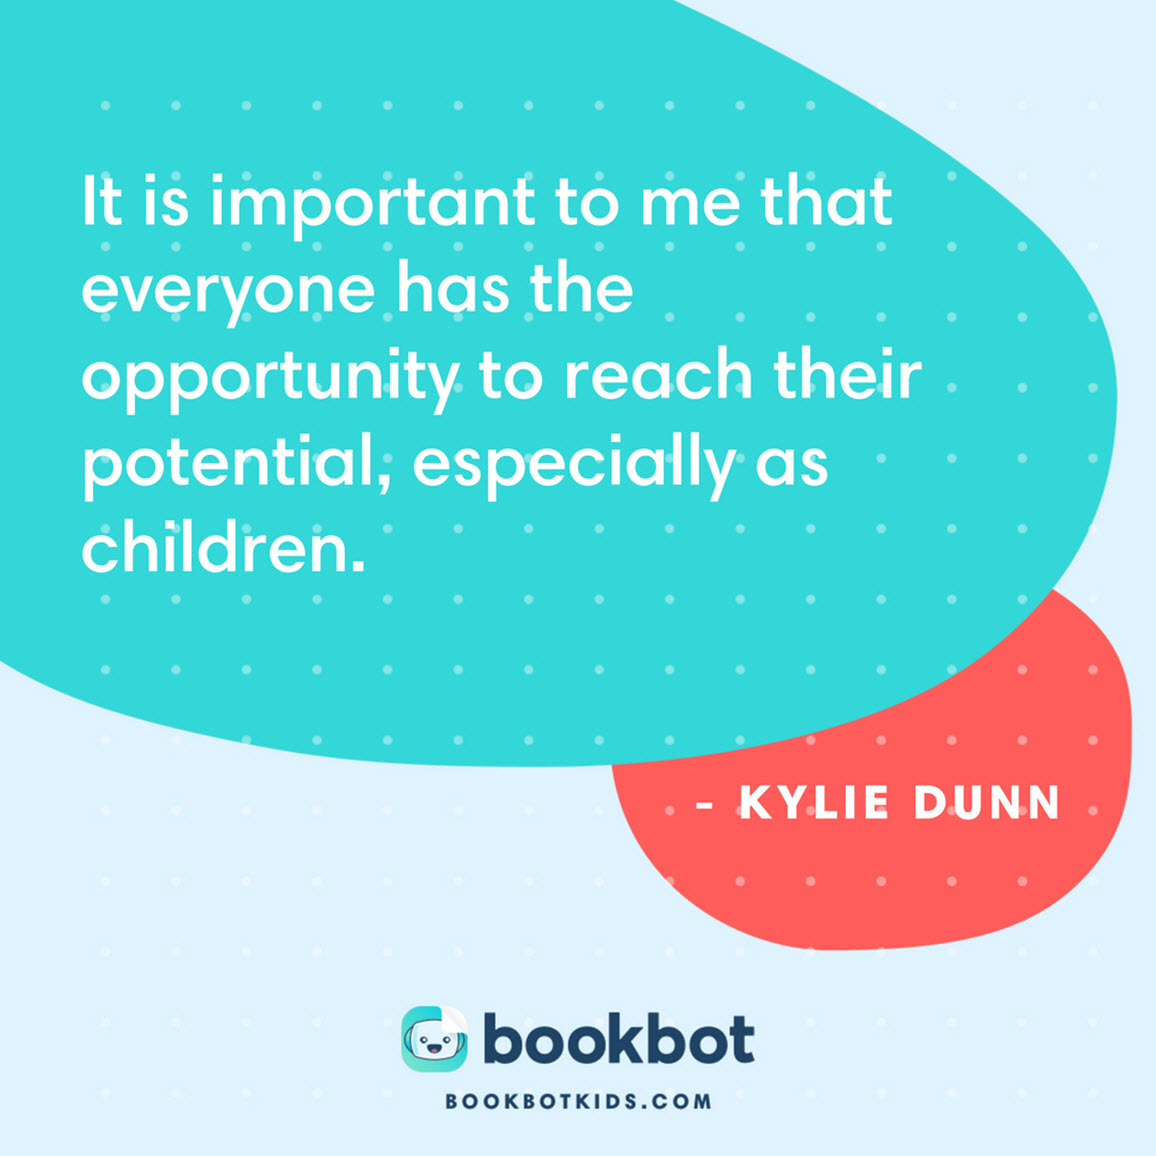 It is important to me that everyone has the opportunity to reach their potential, especially as children. – Kylie Dunn